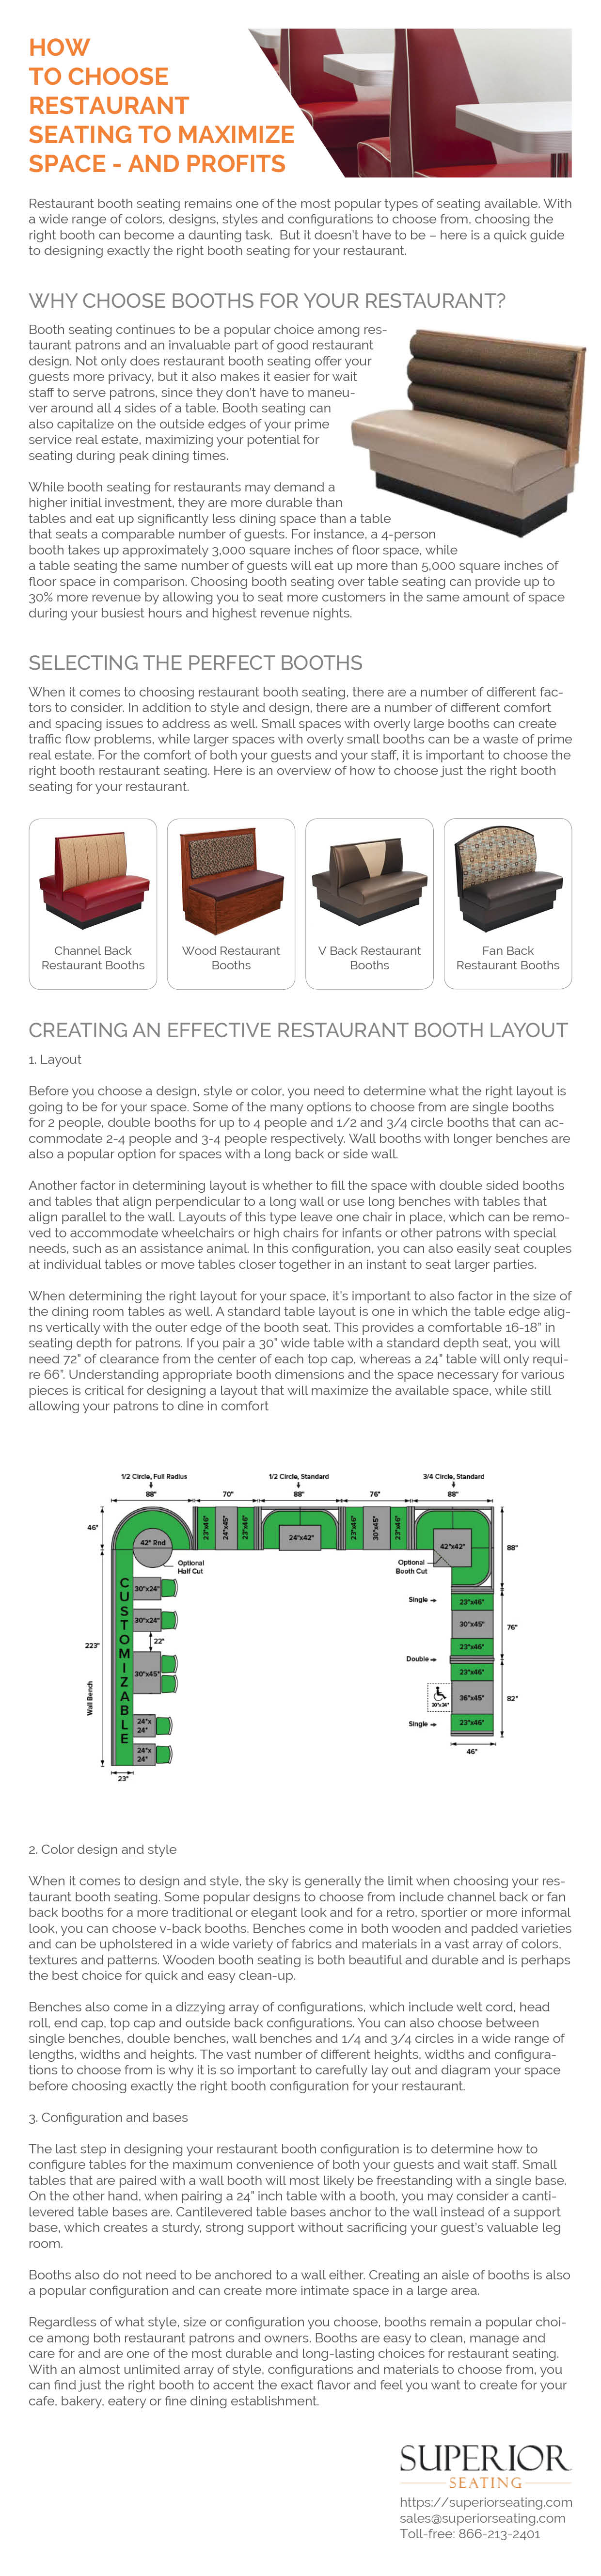 Restaurant Booth Size and Spacing Standards